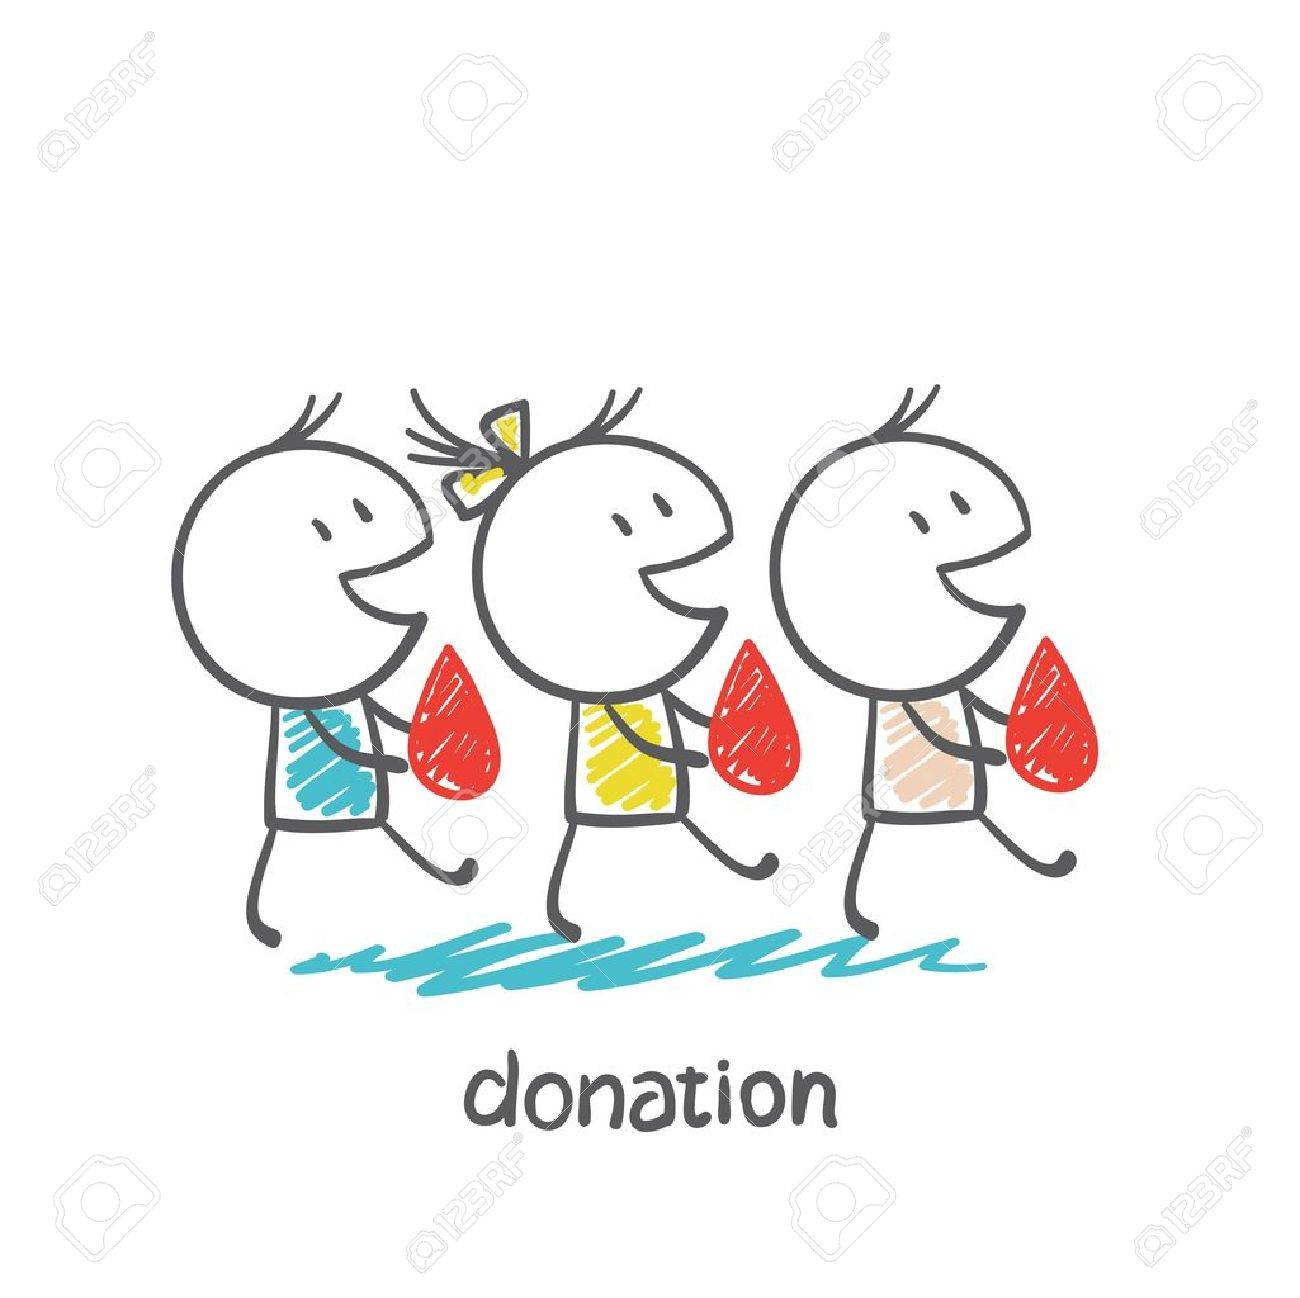 go to donate blood donors illustration - 36067762